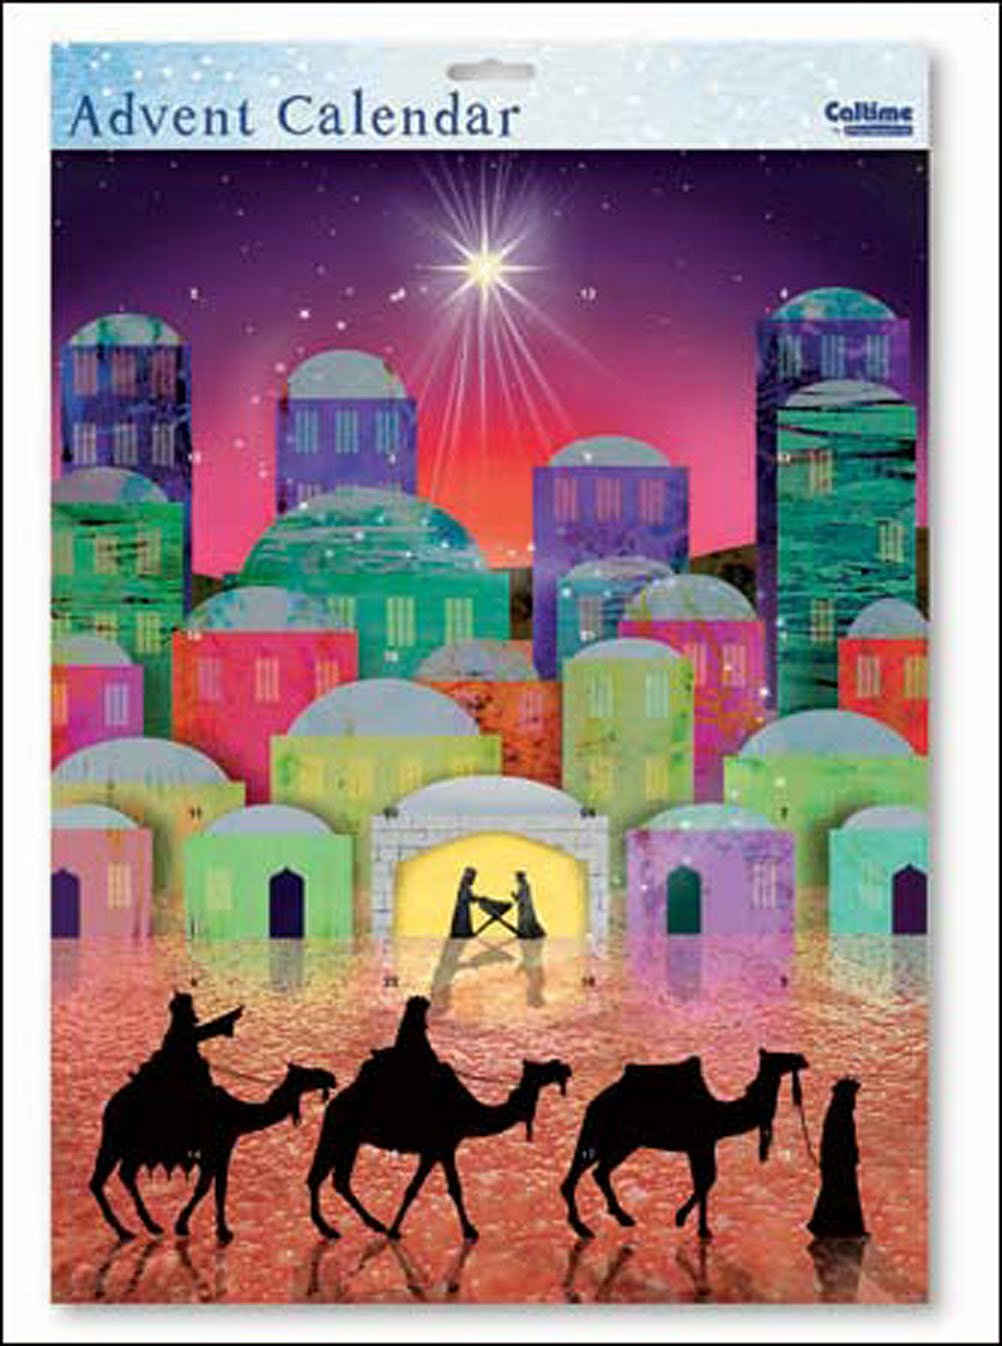 We Three Kings Nativity Silhouette large advent calendar with White Envelope 315 x 410 mm woodmanstern